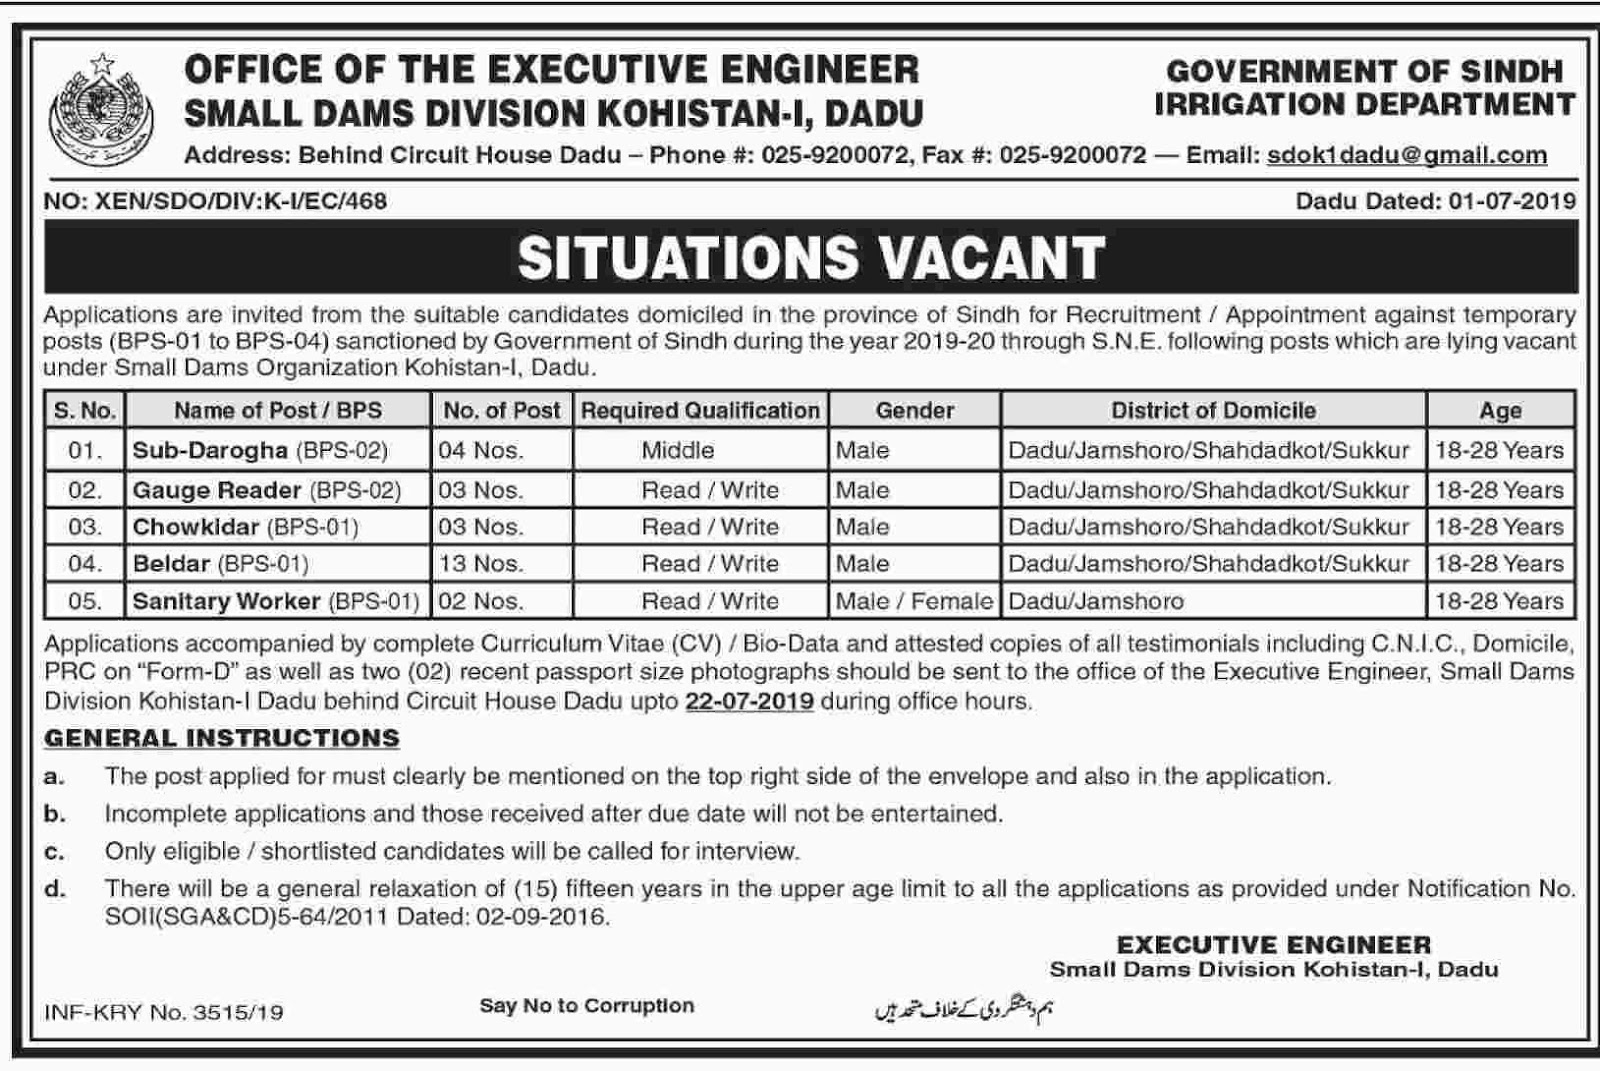 Latest Jobs in Executive Engineer Small Dams Division 04 Jul 2019